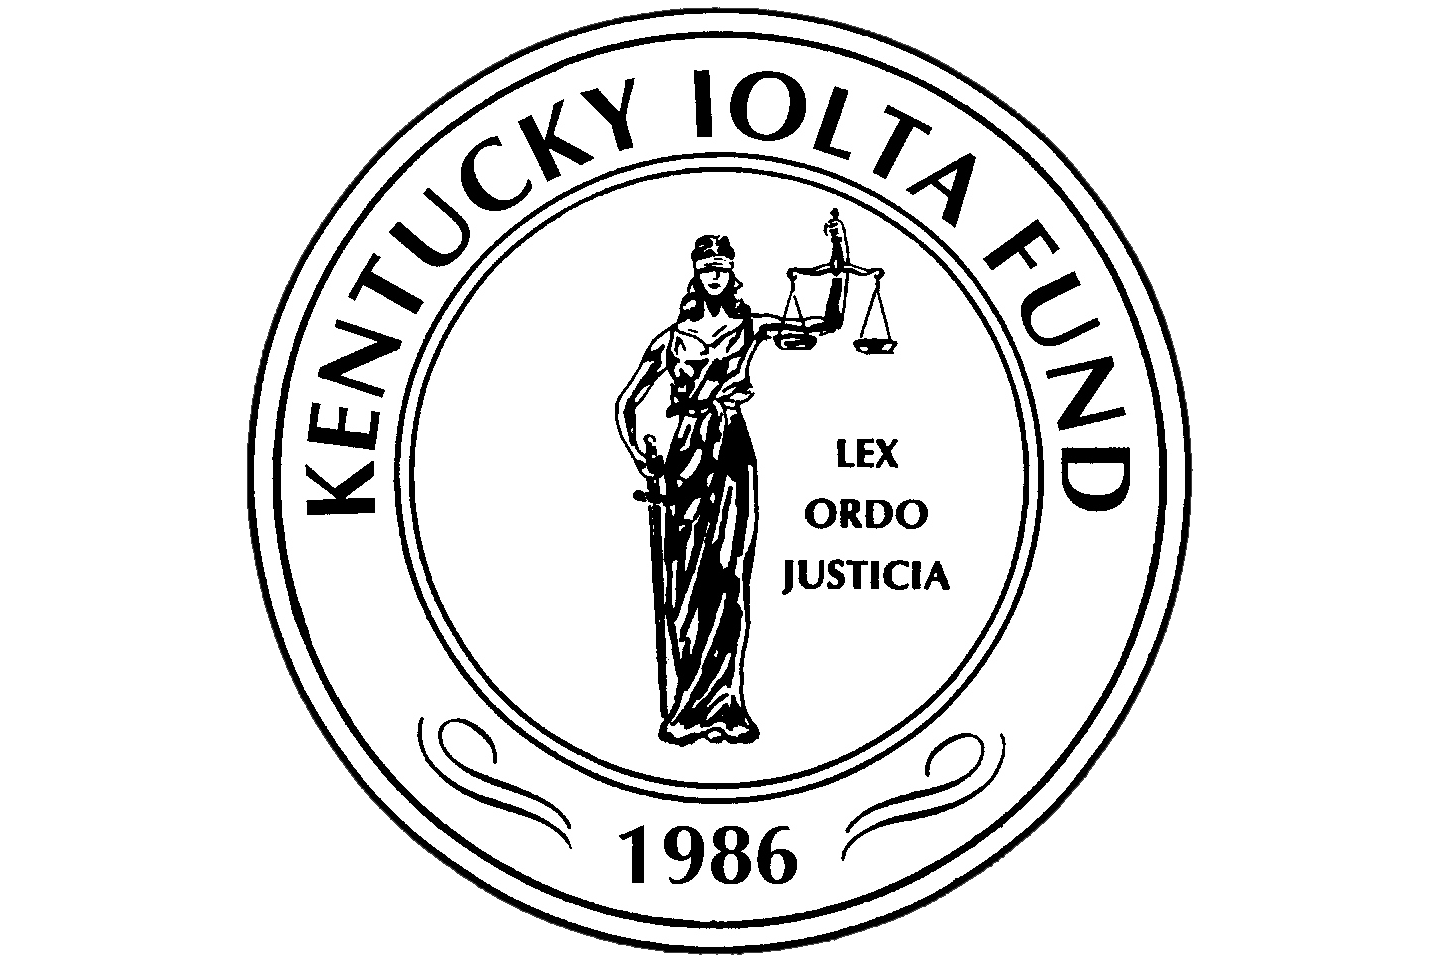 https://iolta.org/wp-content/uploads/Kentucky-IOLTA-Fund.png